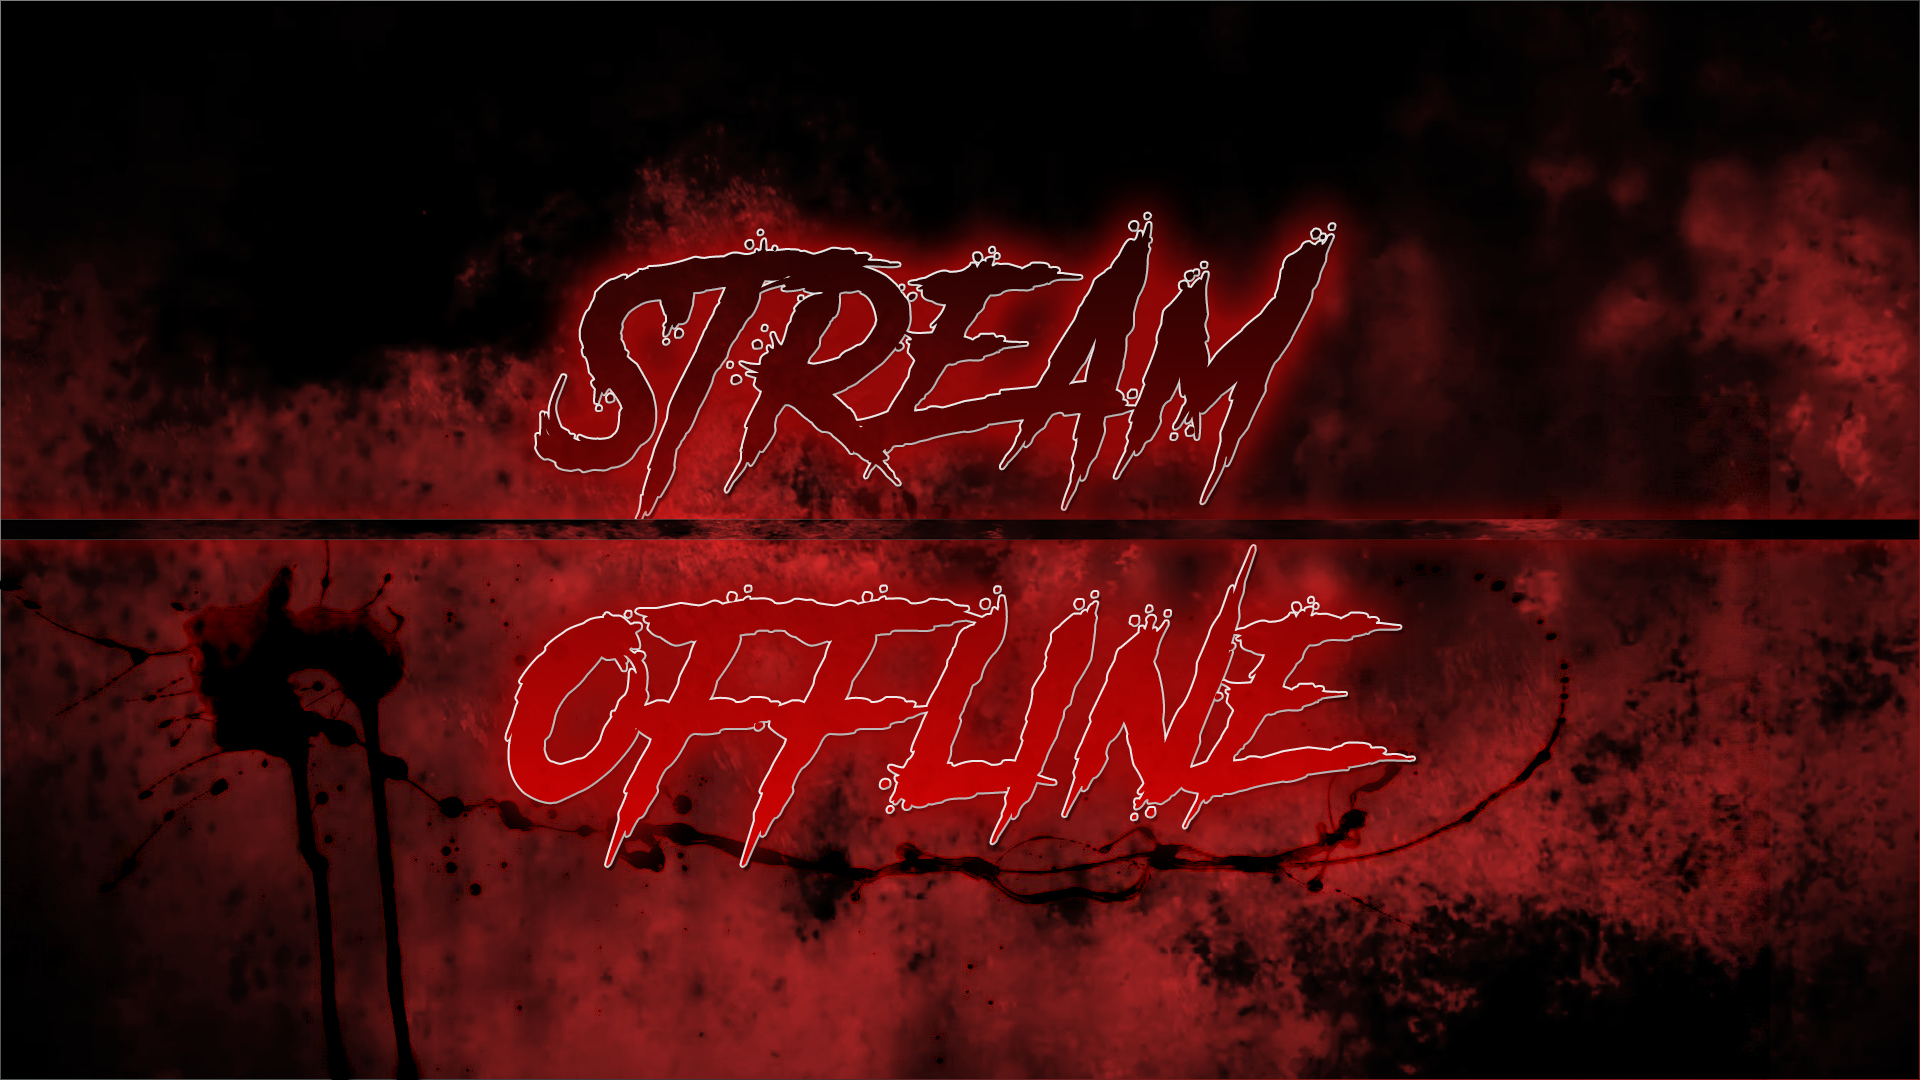 Free Stream Overlay For Twitch